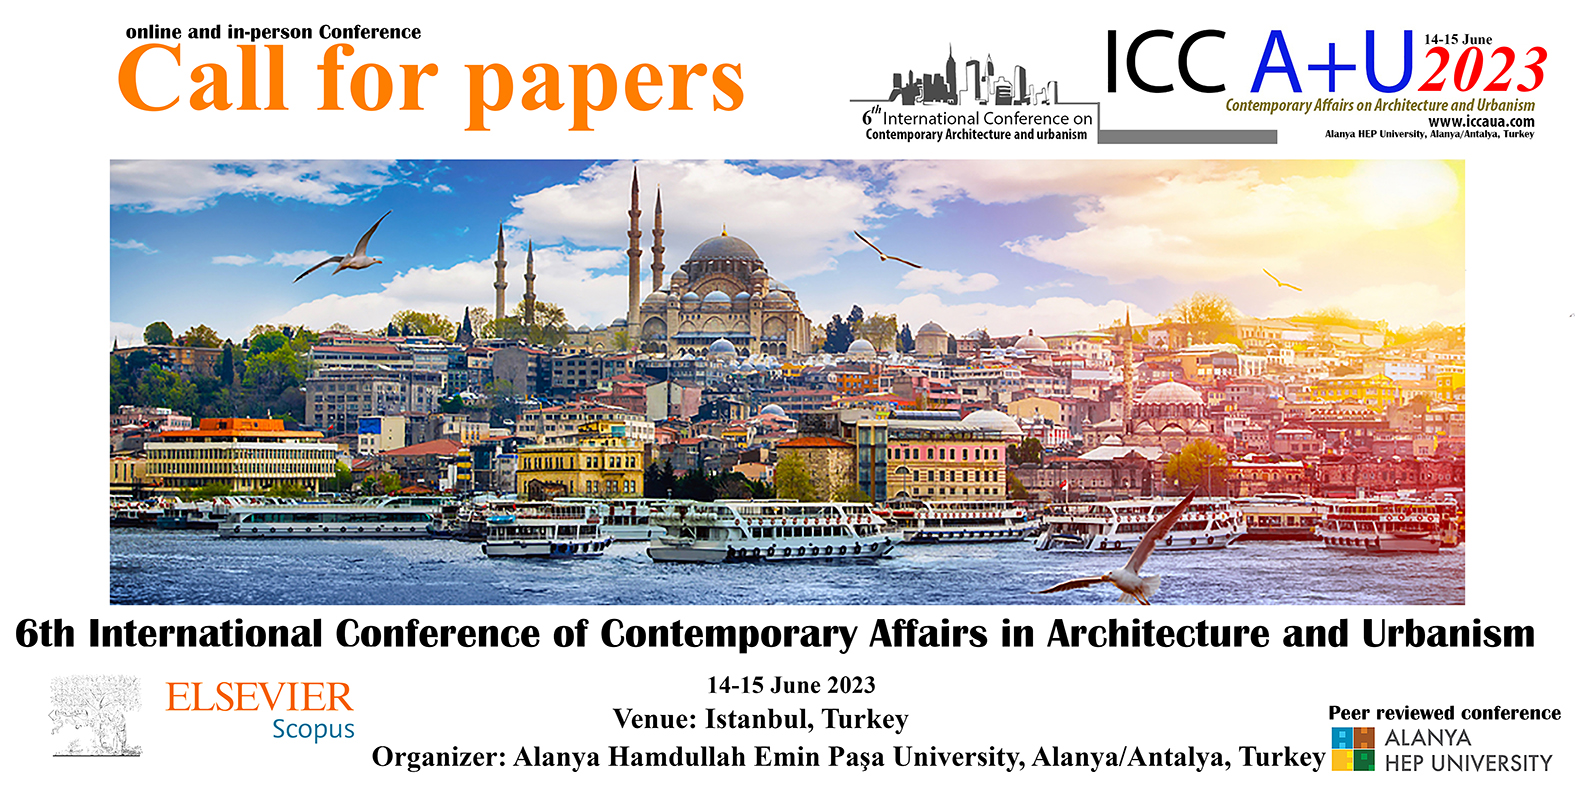 4th International conference of Contemporary Affairs on Architecture and Urbanism 2020 ICCAUA ALANYA HEP UNIVERSITY